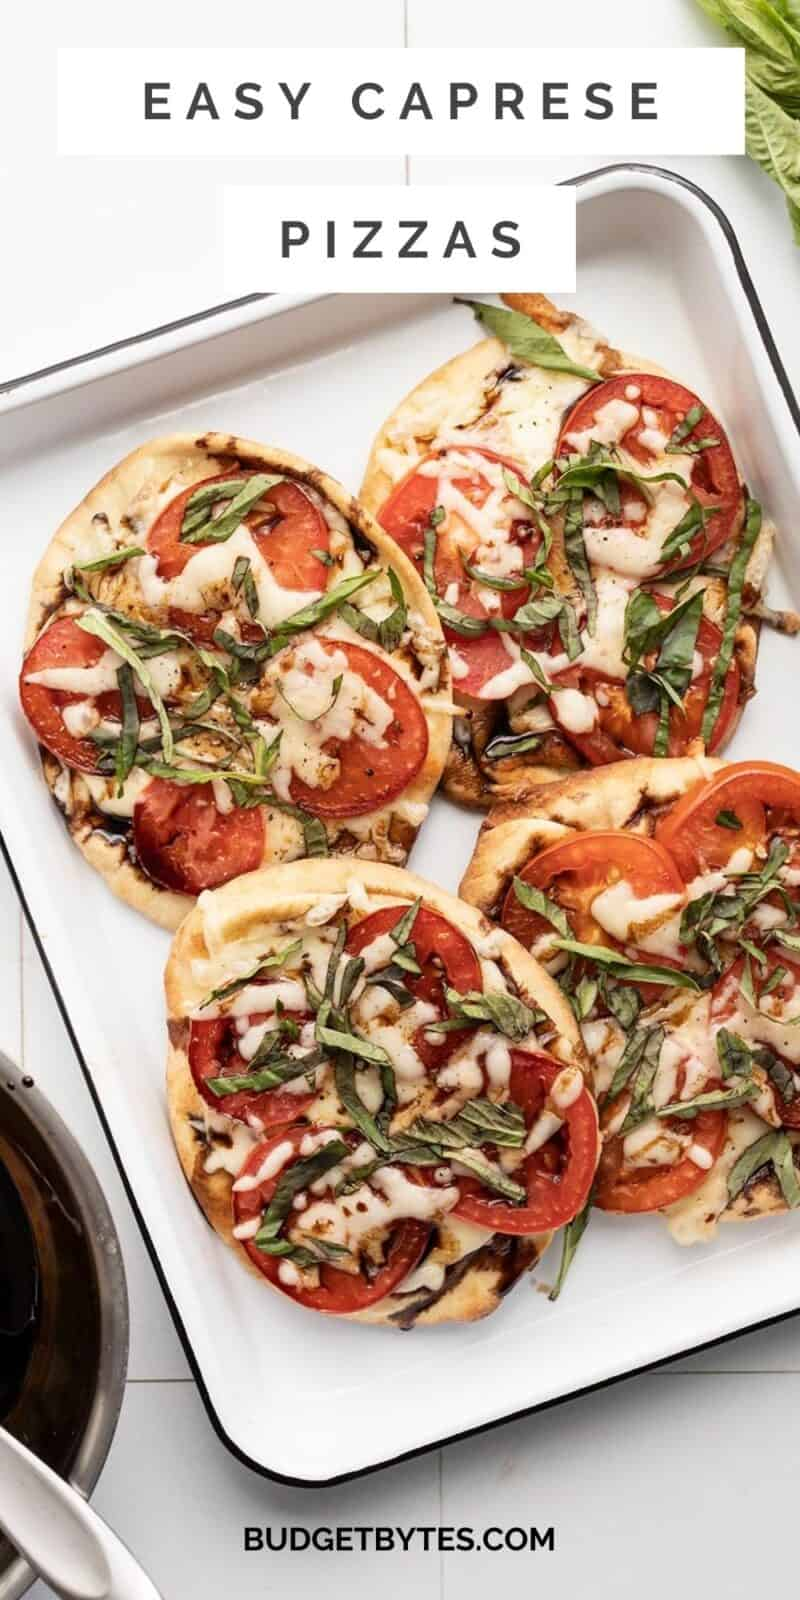 Four Caprese pizzas on a tray, title text at the top